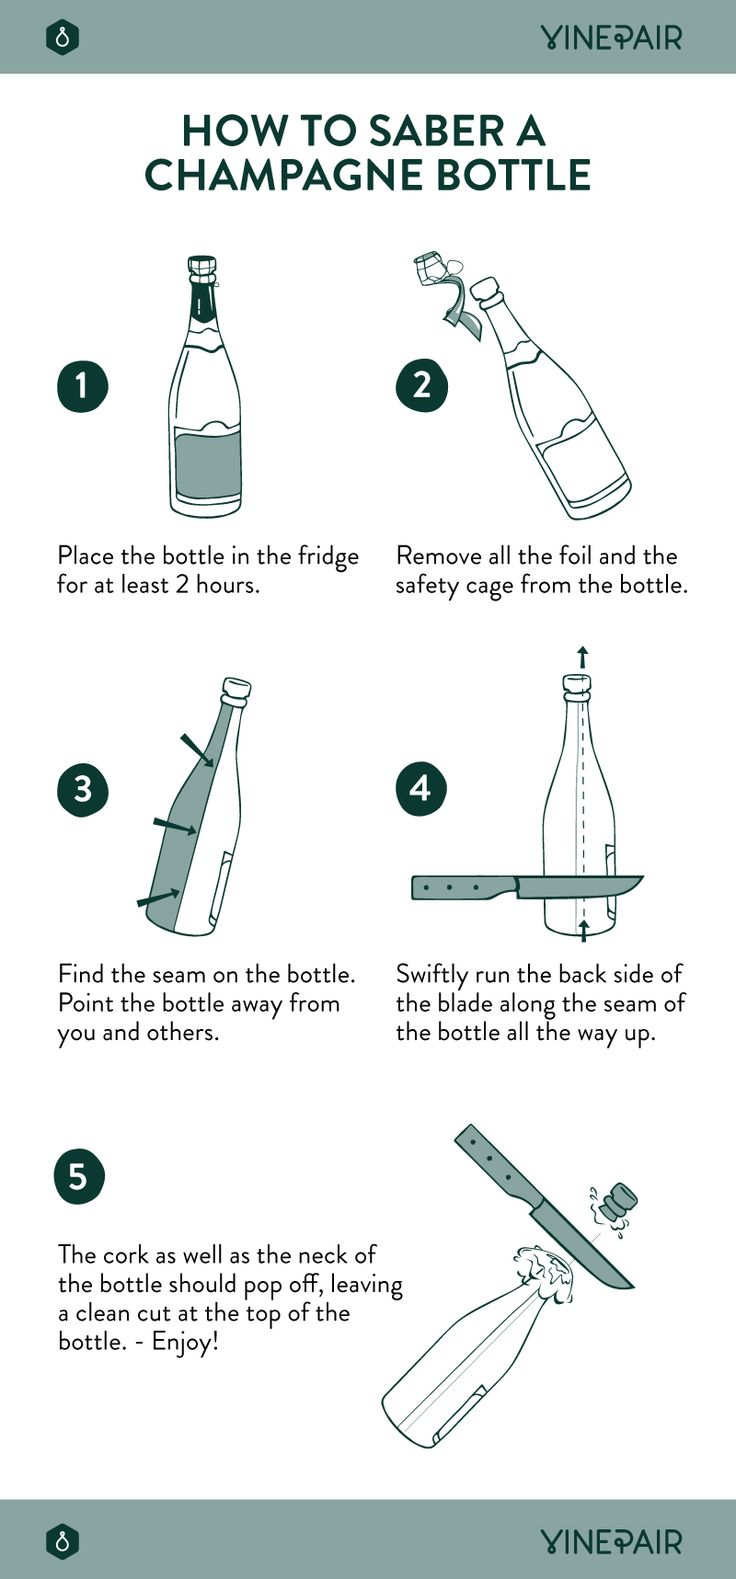 How To Saber A Bottle Of Champagne [Infographic]